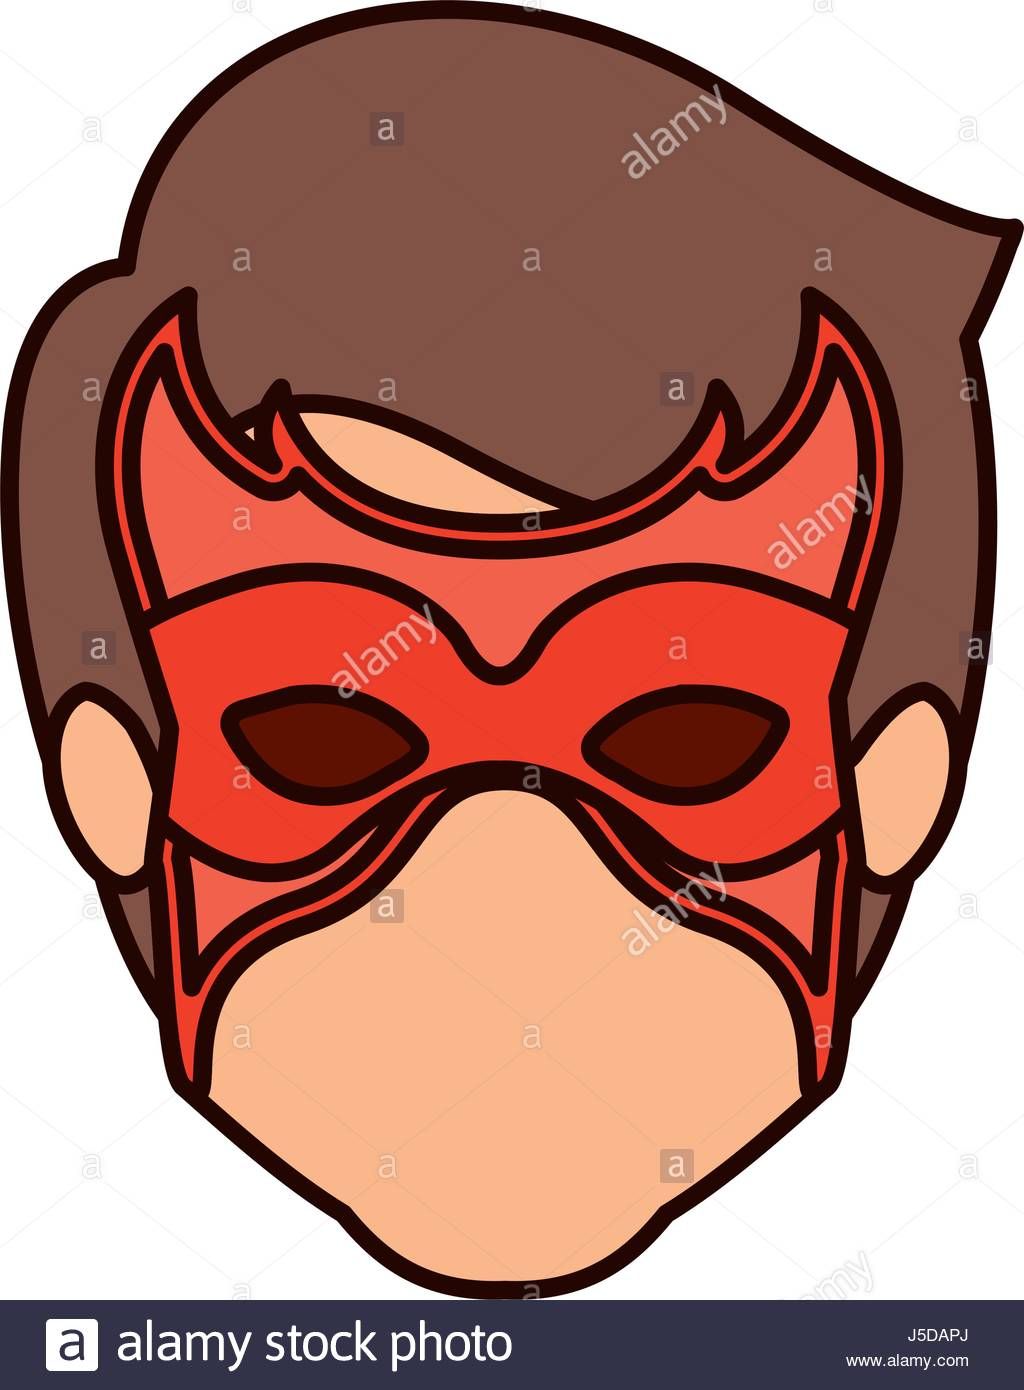 1024x1390 Colorful Silhouette With Faceless Guy Superhero With Mask